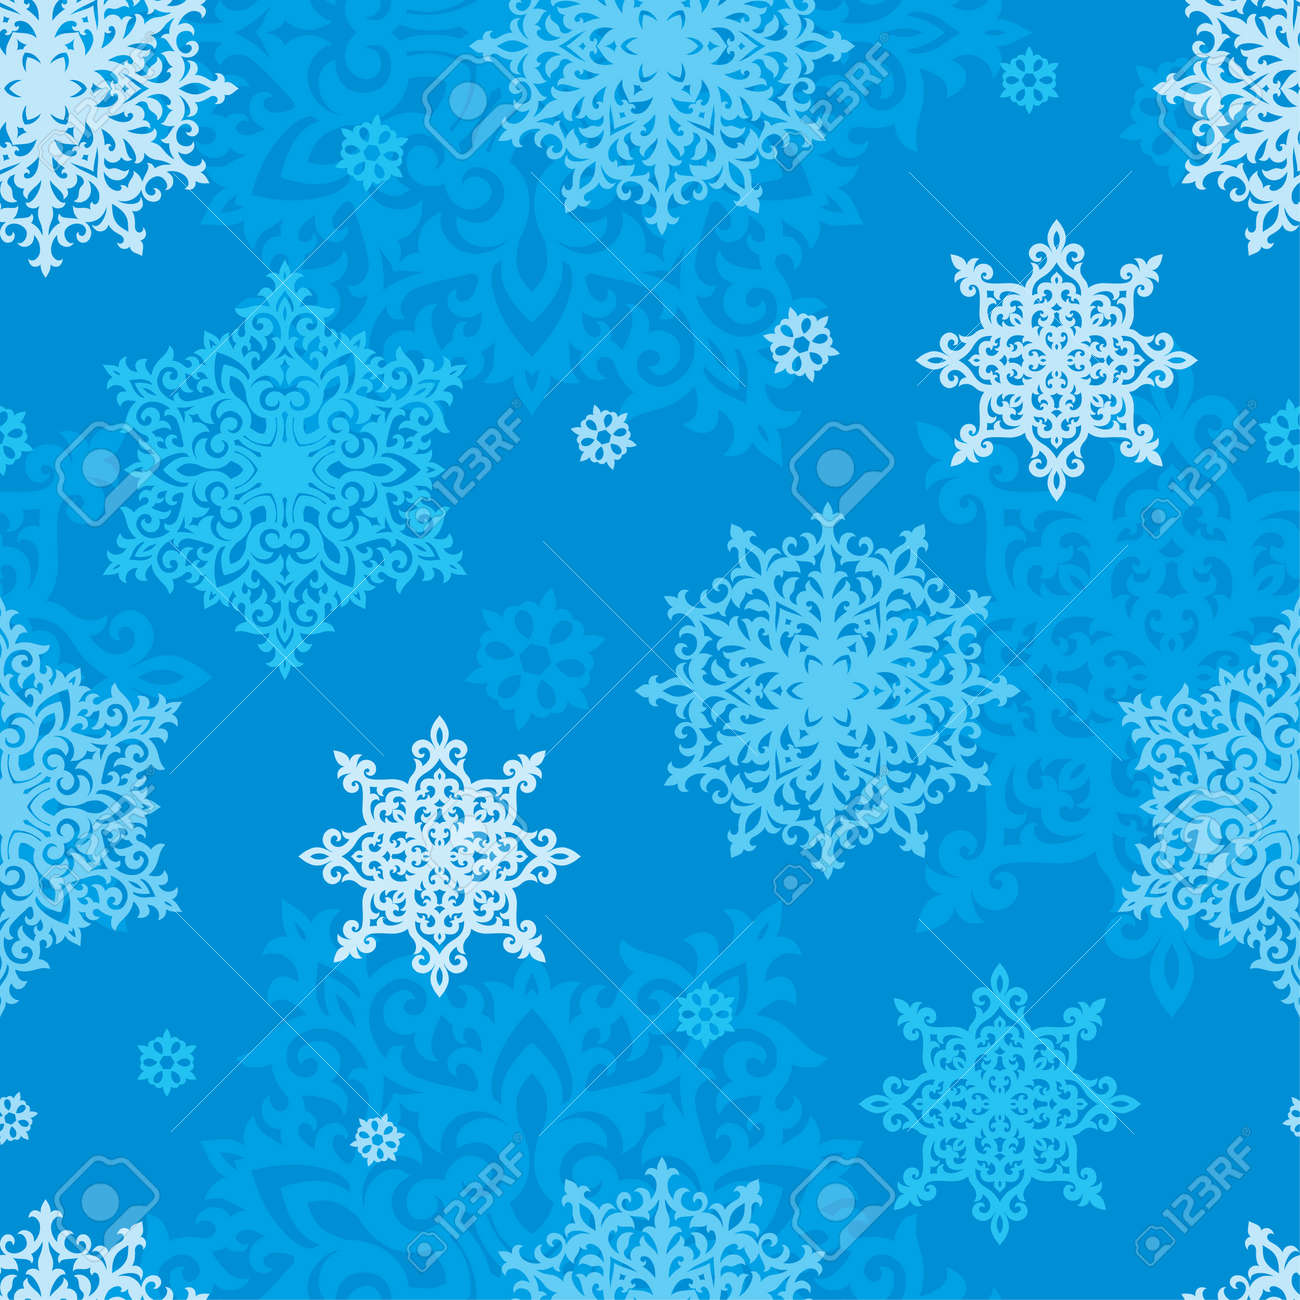 Christmas Background Gif Vector Seamless Pattern Of Snowflakes New Year Or Christmas